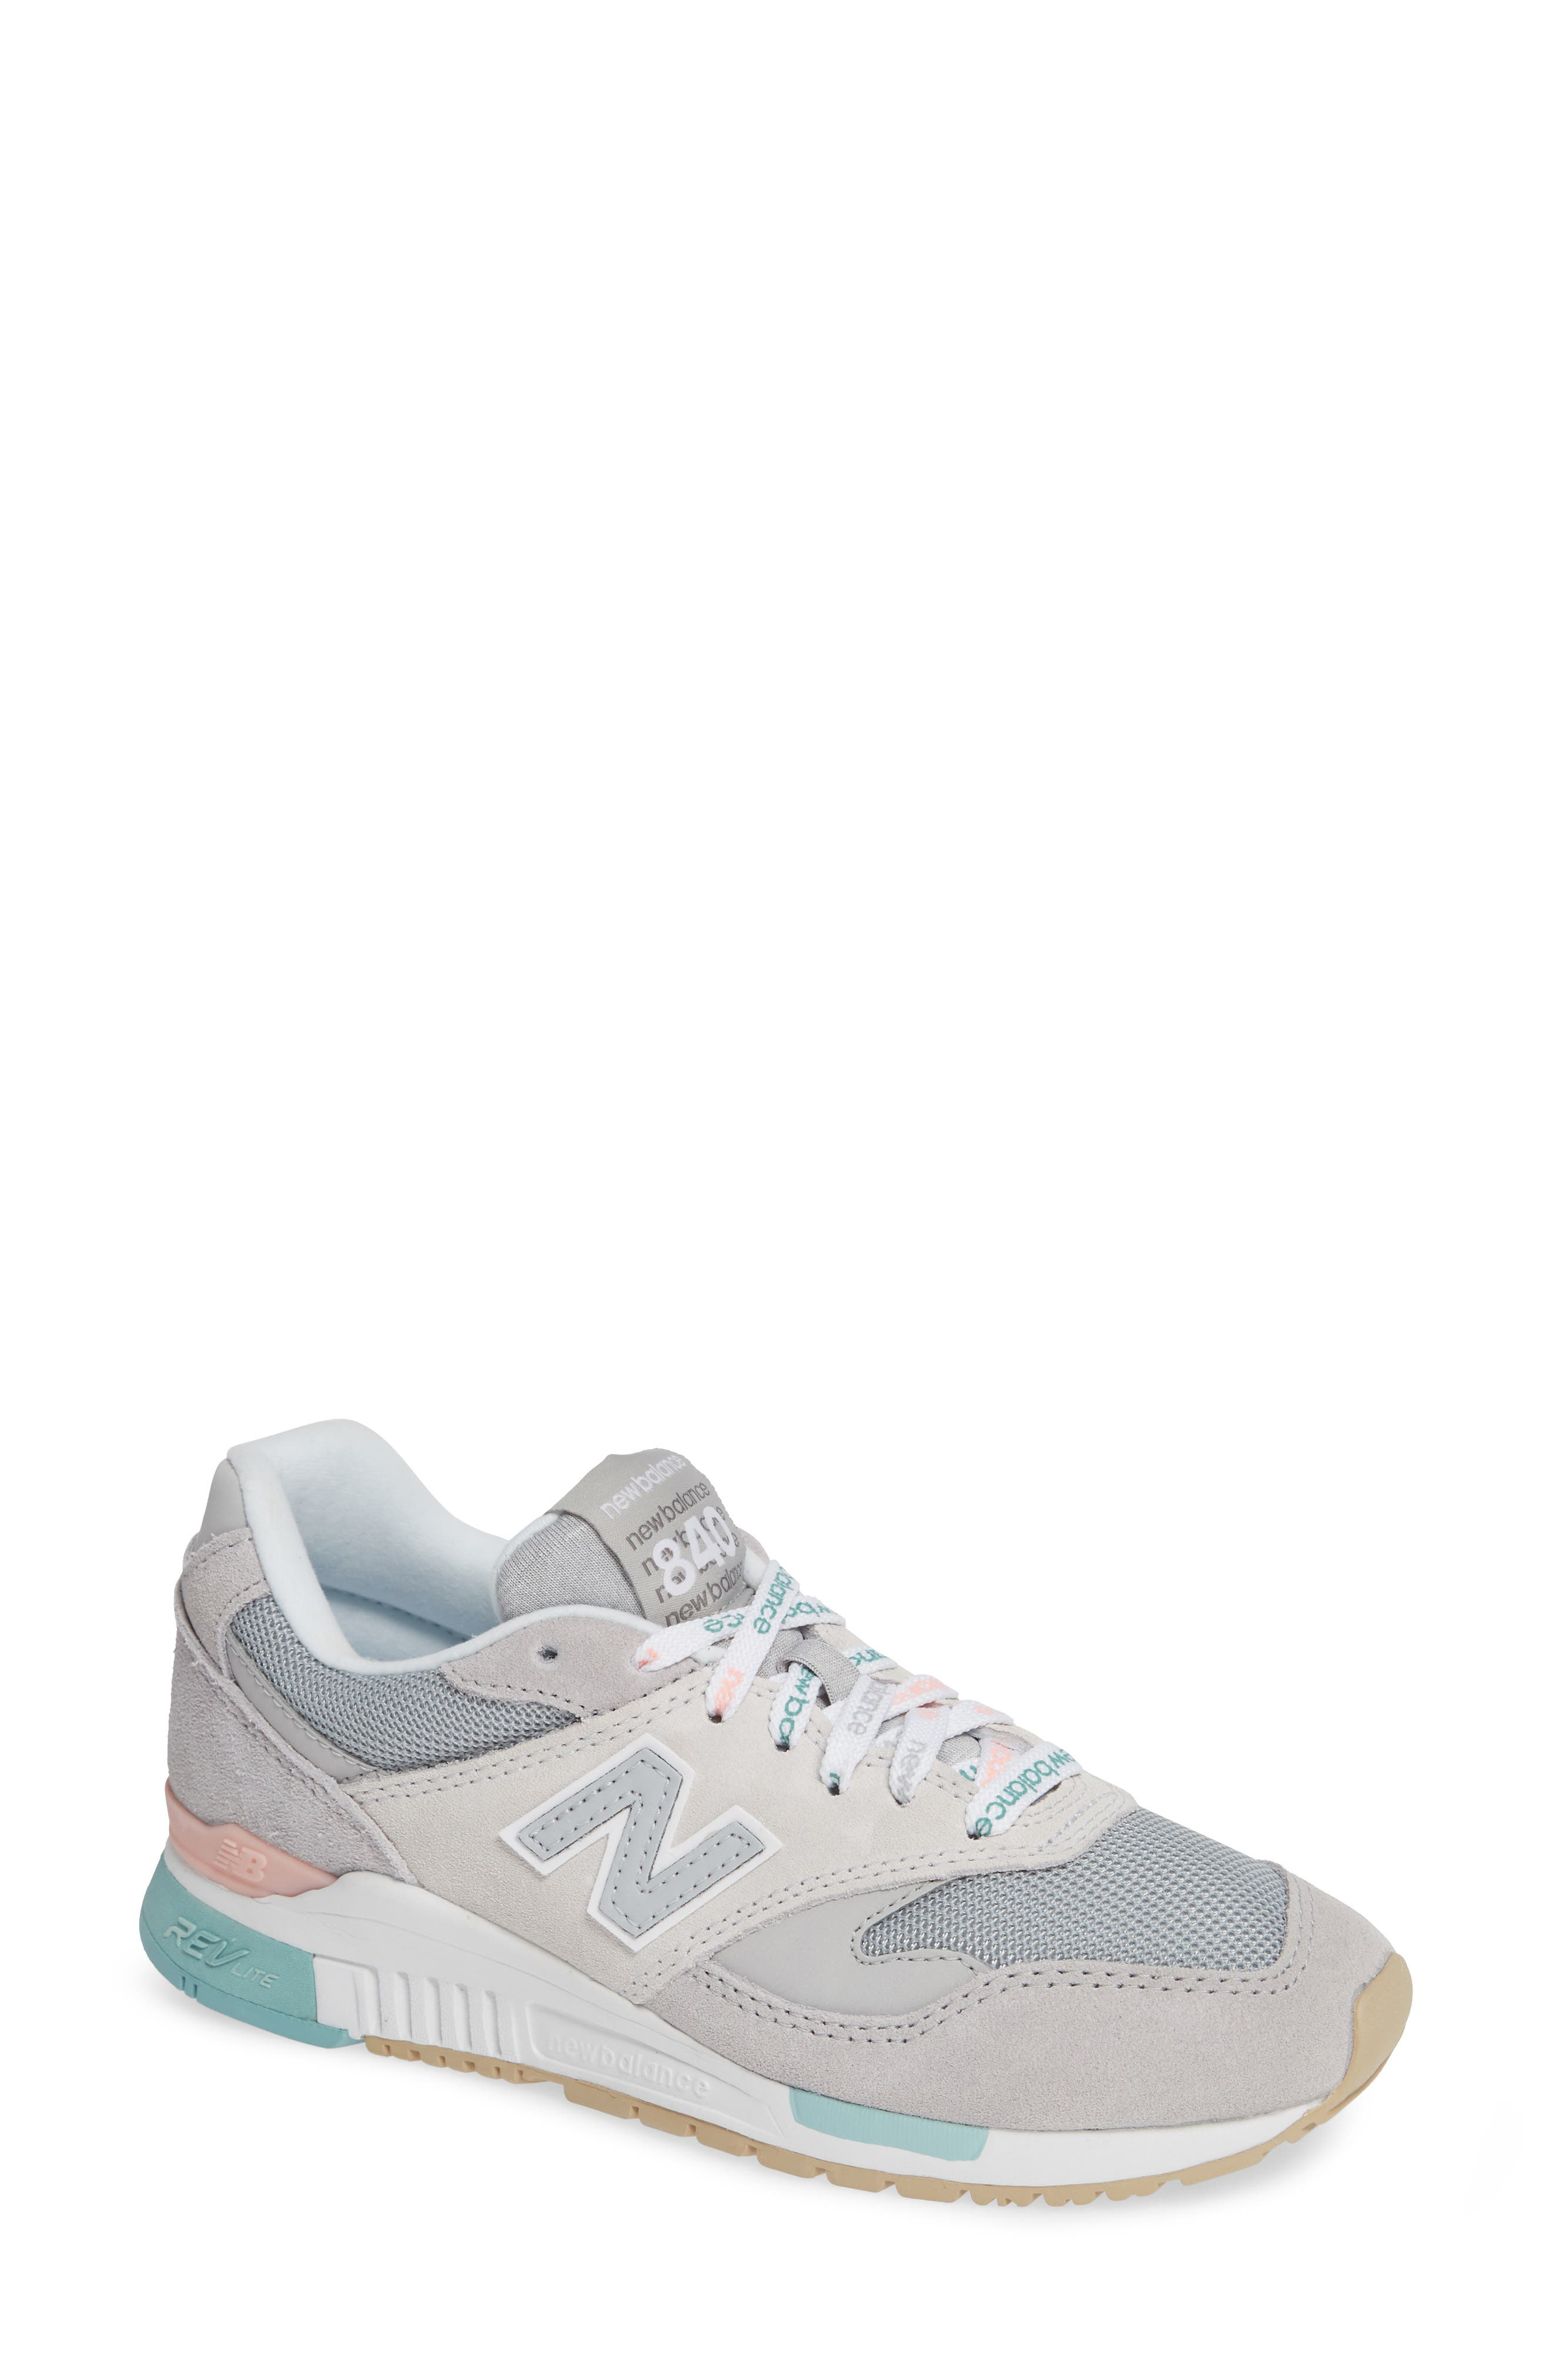 NEW BALANCE 840 Sneaker, Main, color, 020